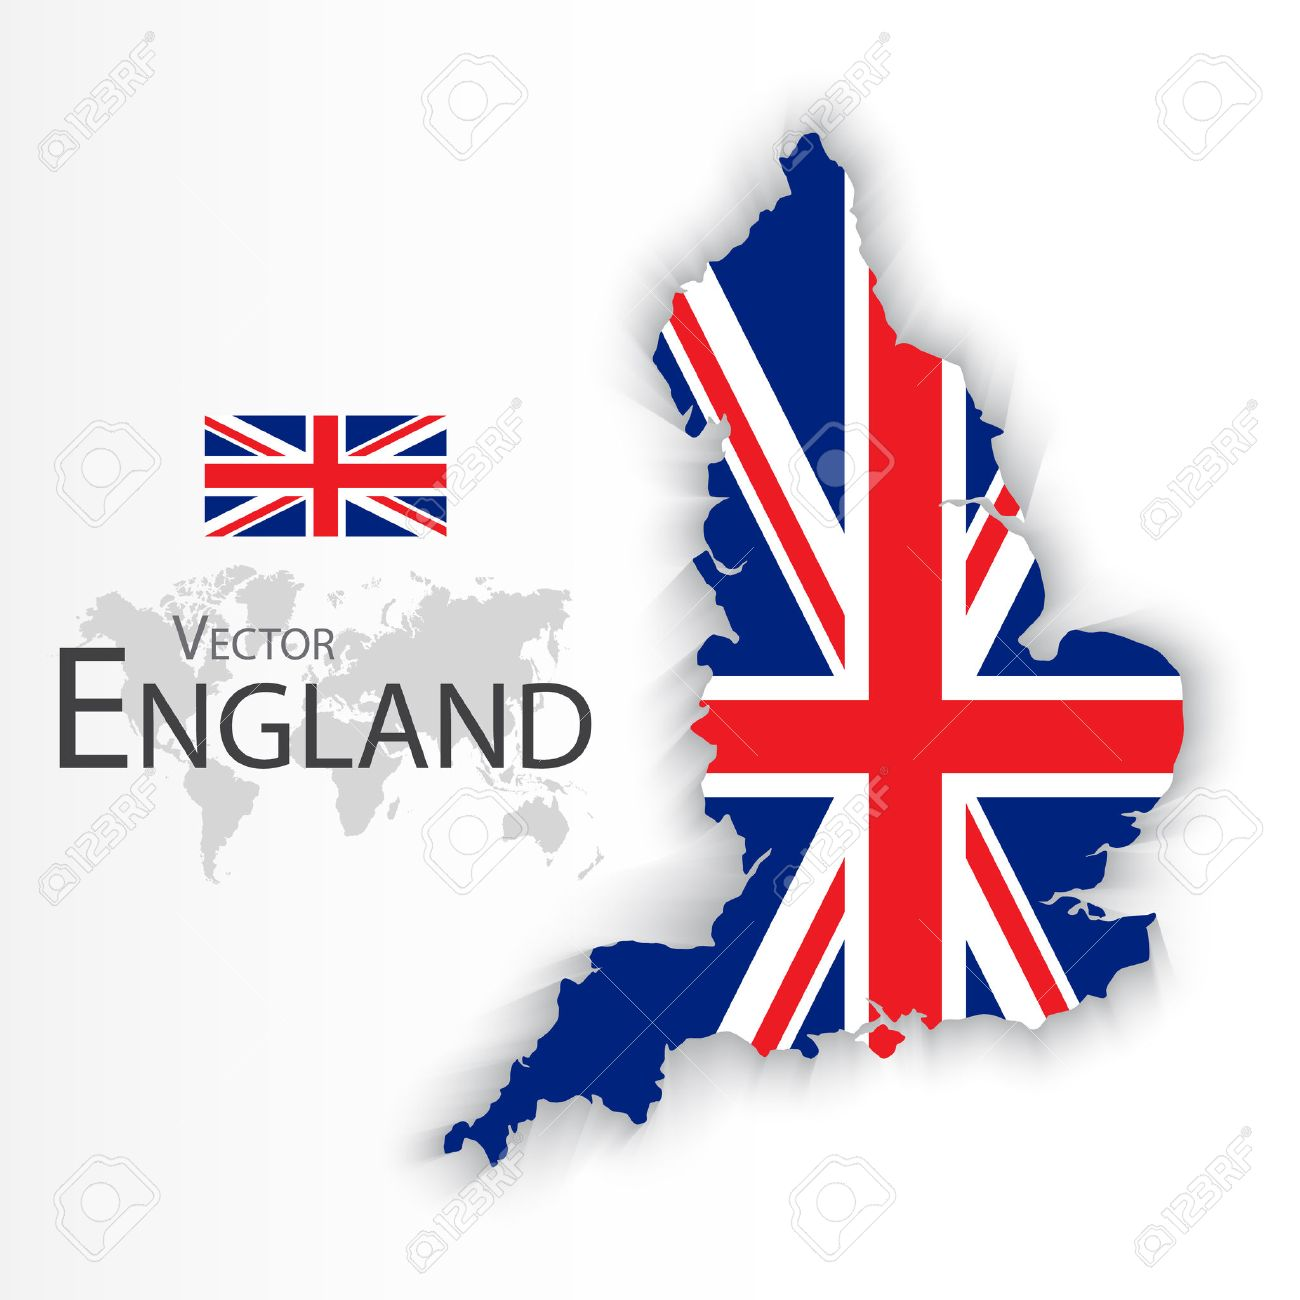 England flag and map ( United Kingdom of Great Britain ) ( combine flag and map ) ( Transportation and tourism concept ) - 52765693